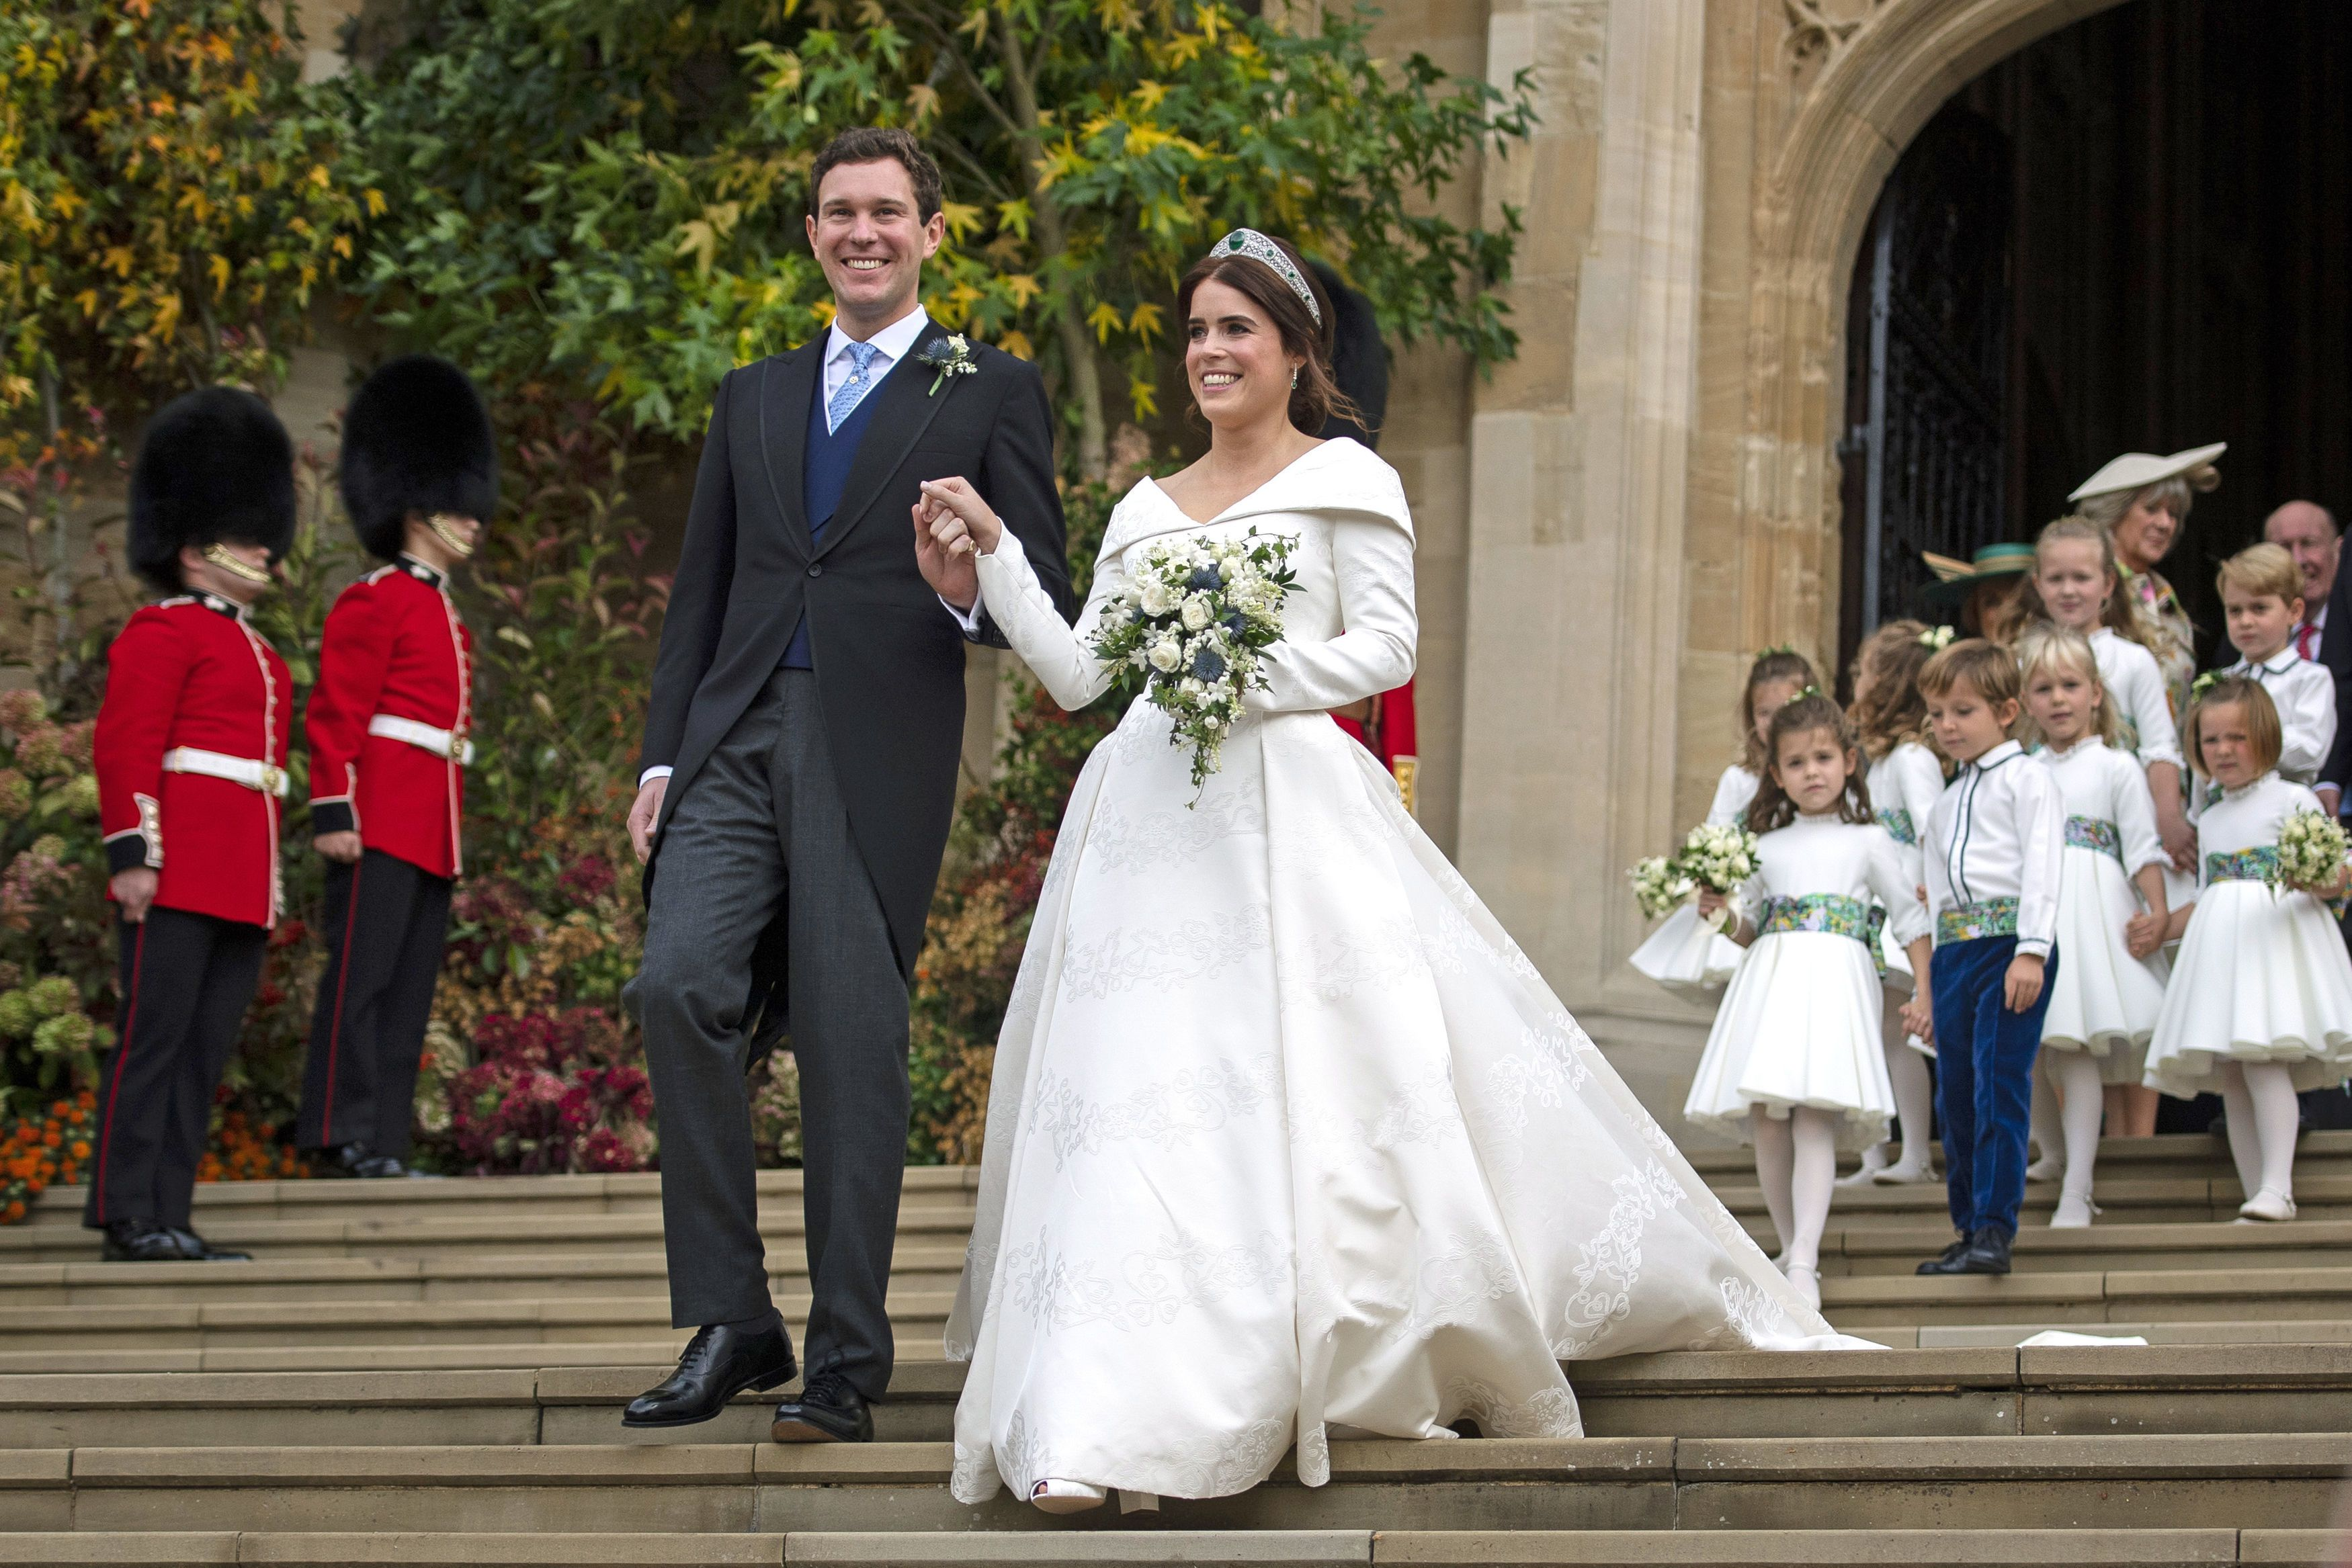 The second of Queen Elizabeth's grandchildren to get married in 2018, Princess Eugenie wed Jack Brooksbank on Friday, October 12, wearing custom Peter Pilotto for their ceremony in Windsor , before changing into blush custom Zac Posen for the evening's festivities.